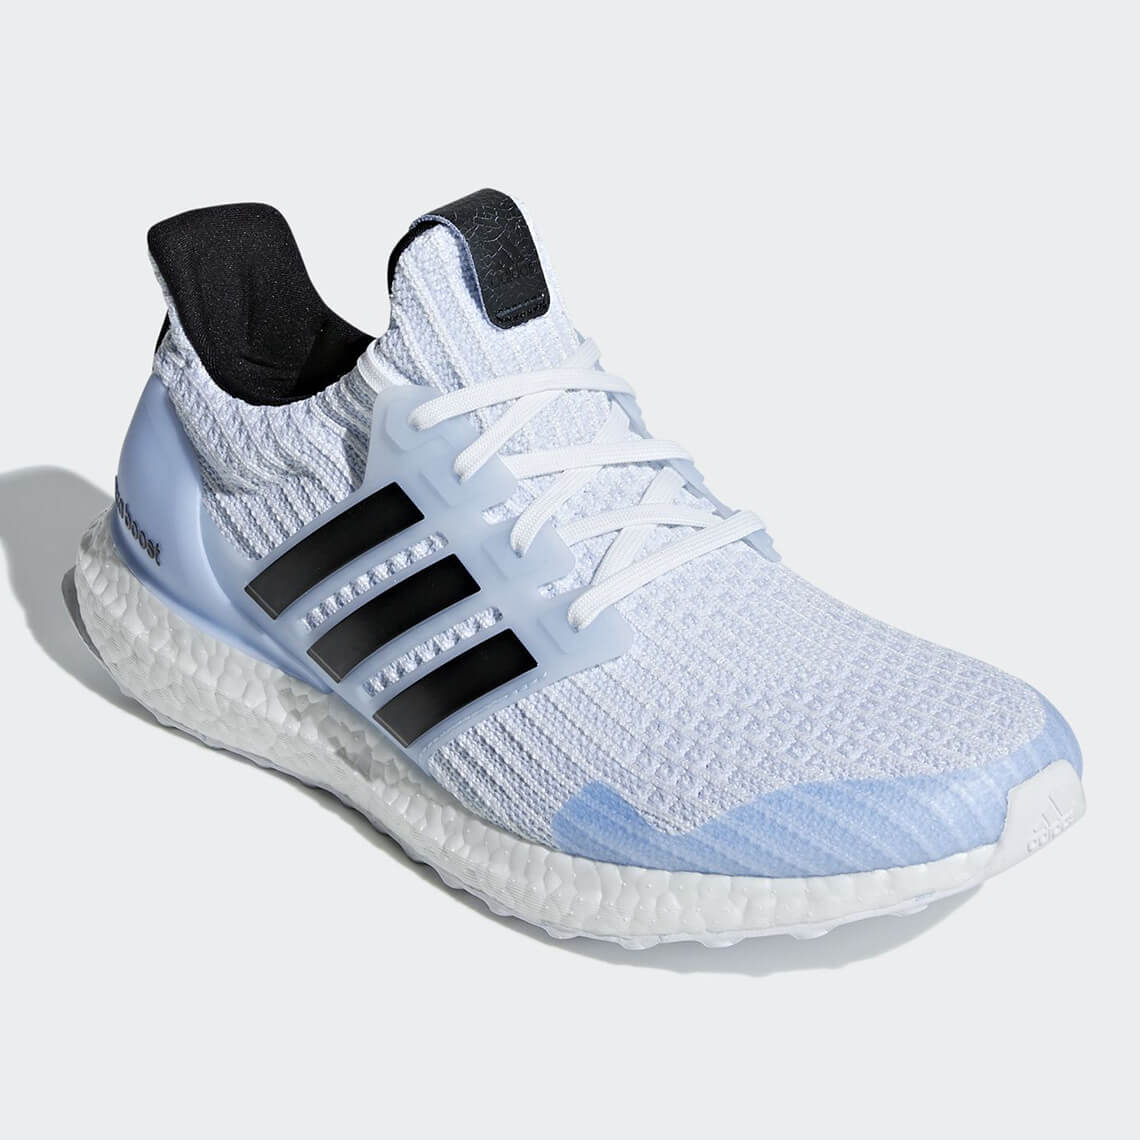 adidas ultra boost game of thrones white walkers EE3708 2